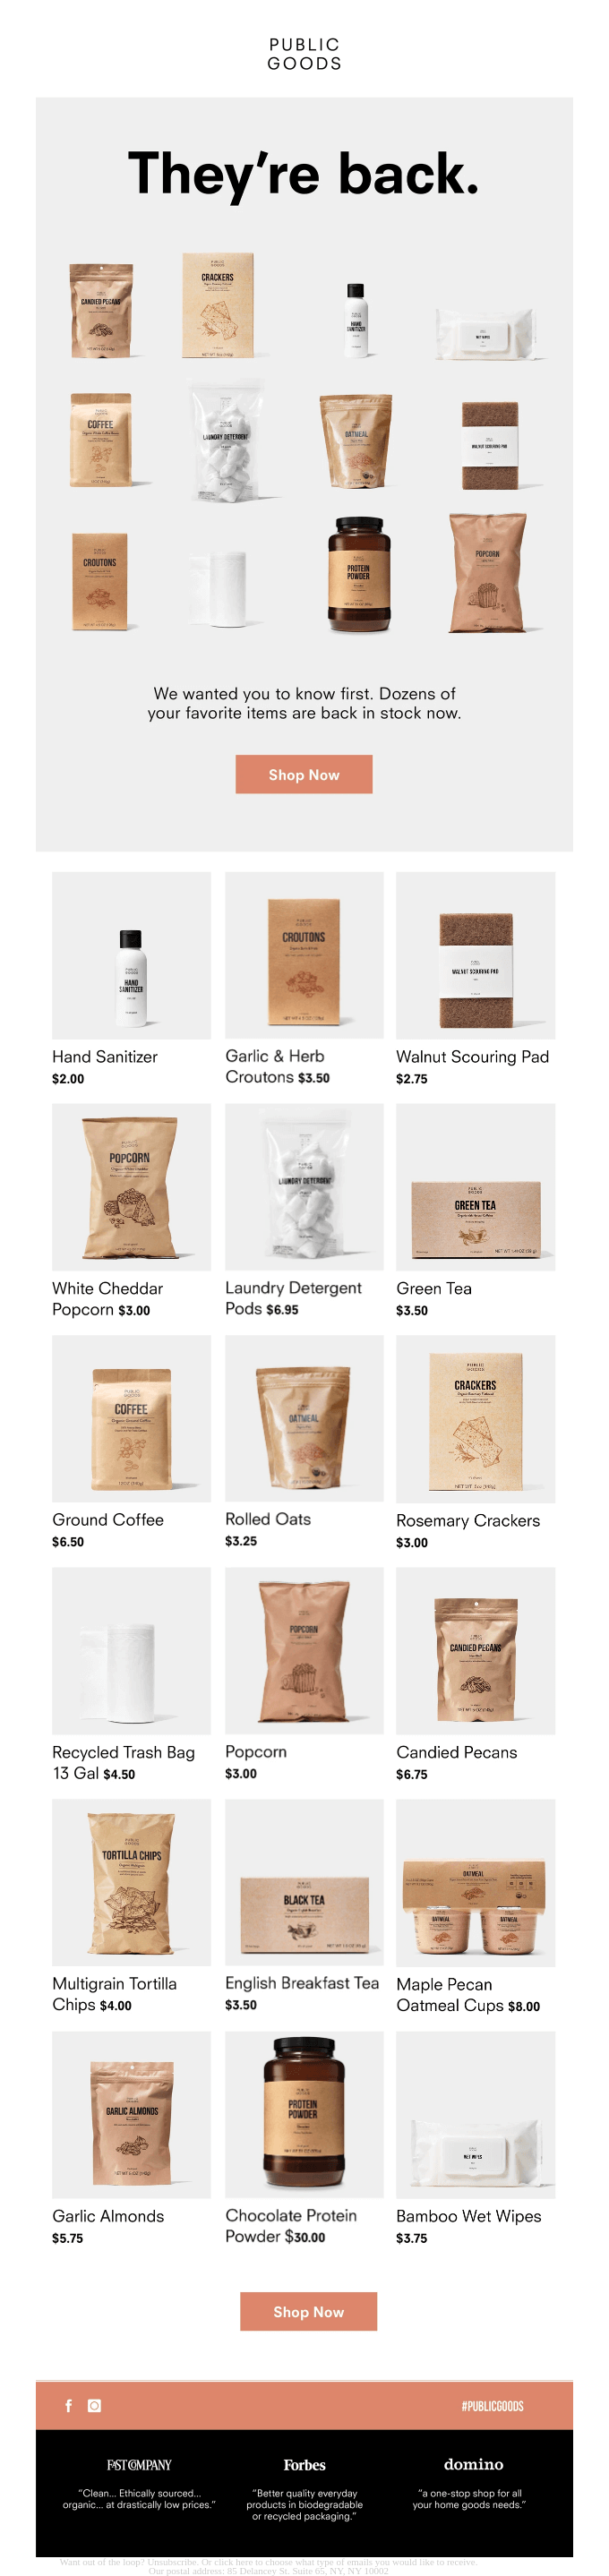 See What's Back In Stock.